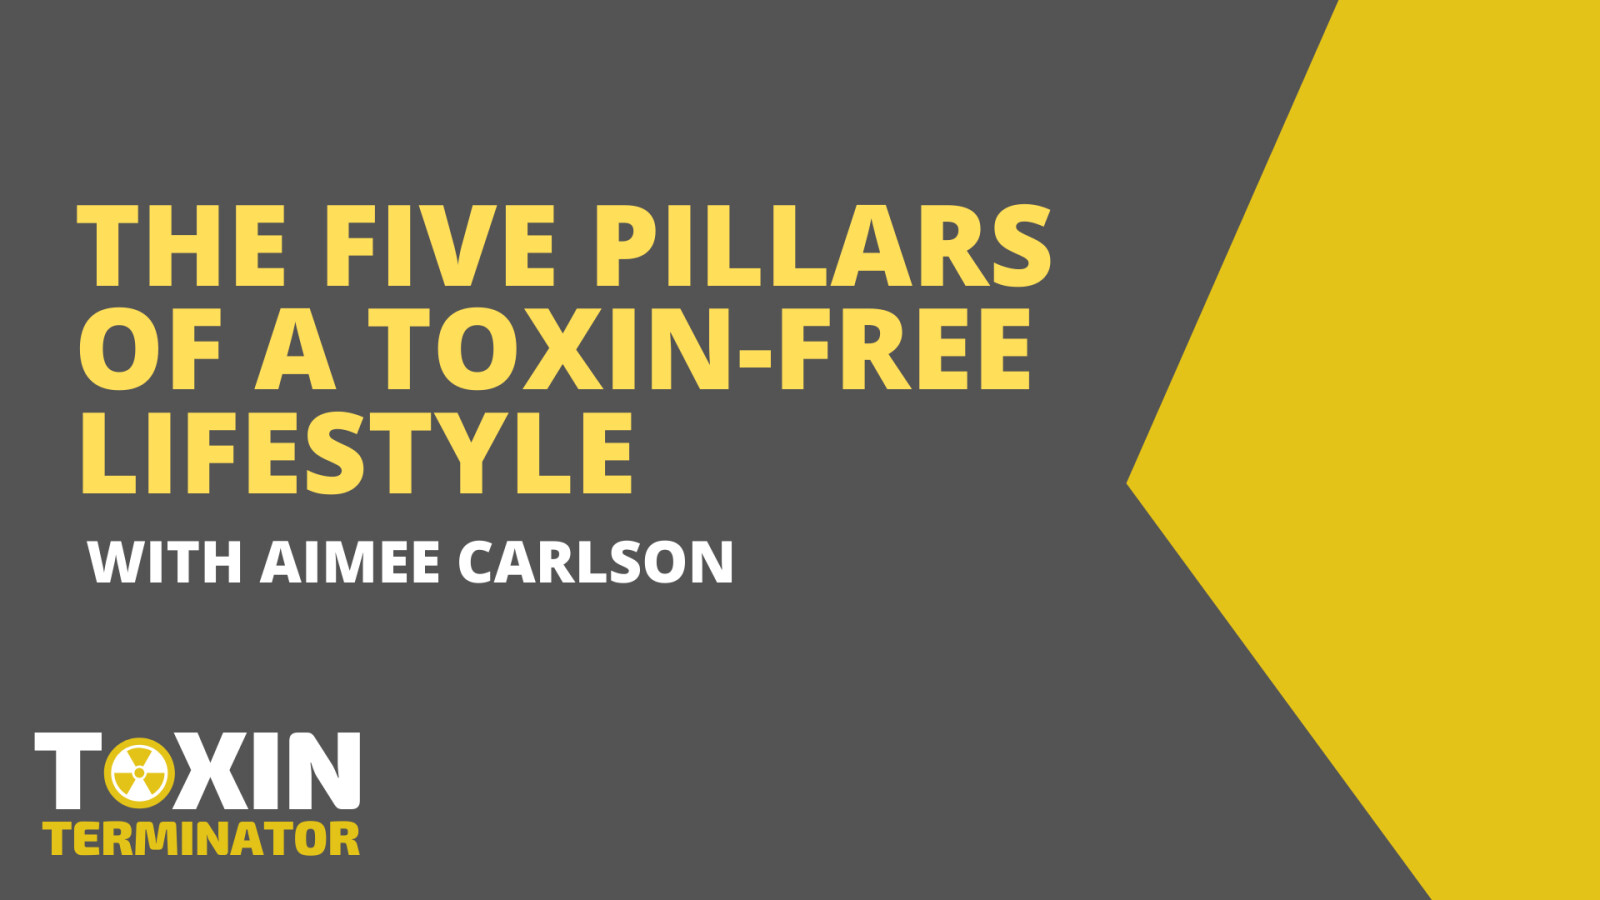 The 5 Pillars of a Toxin-Free Lifestyle